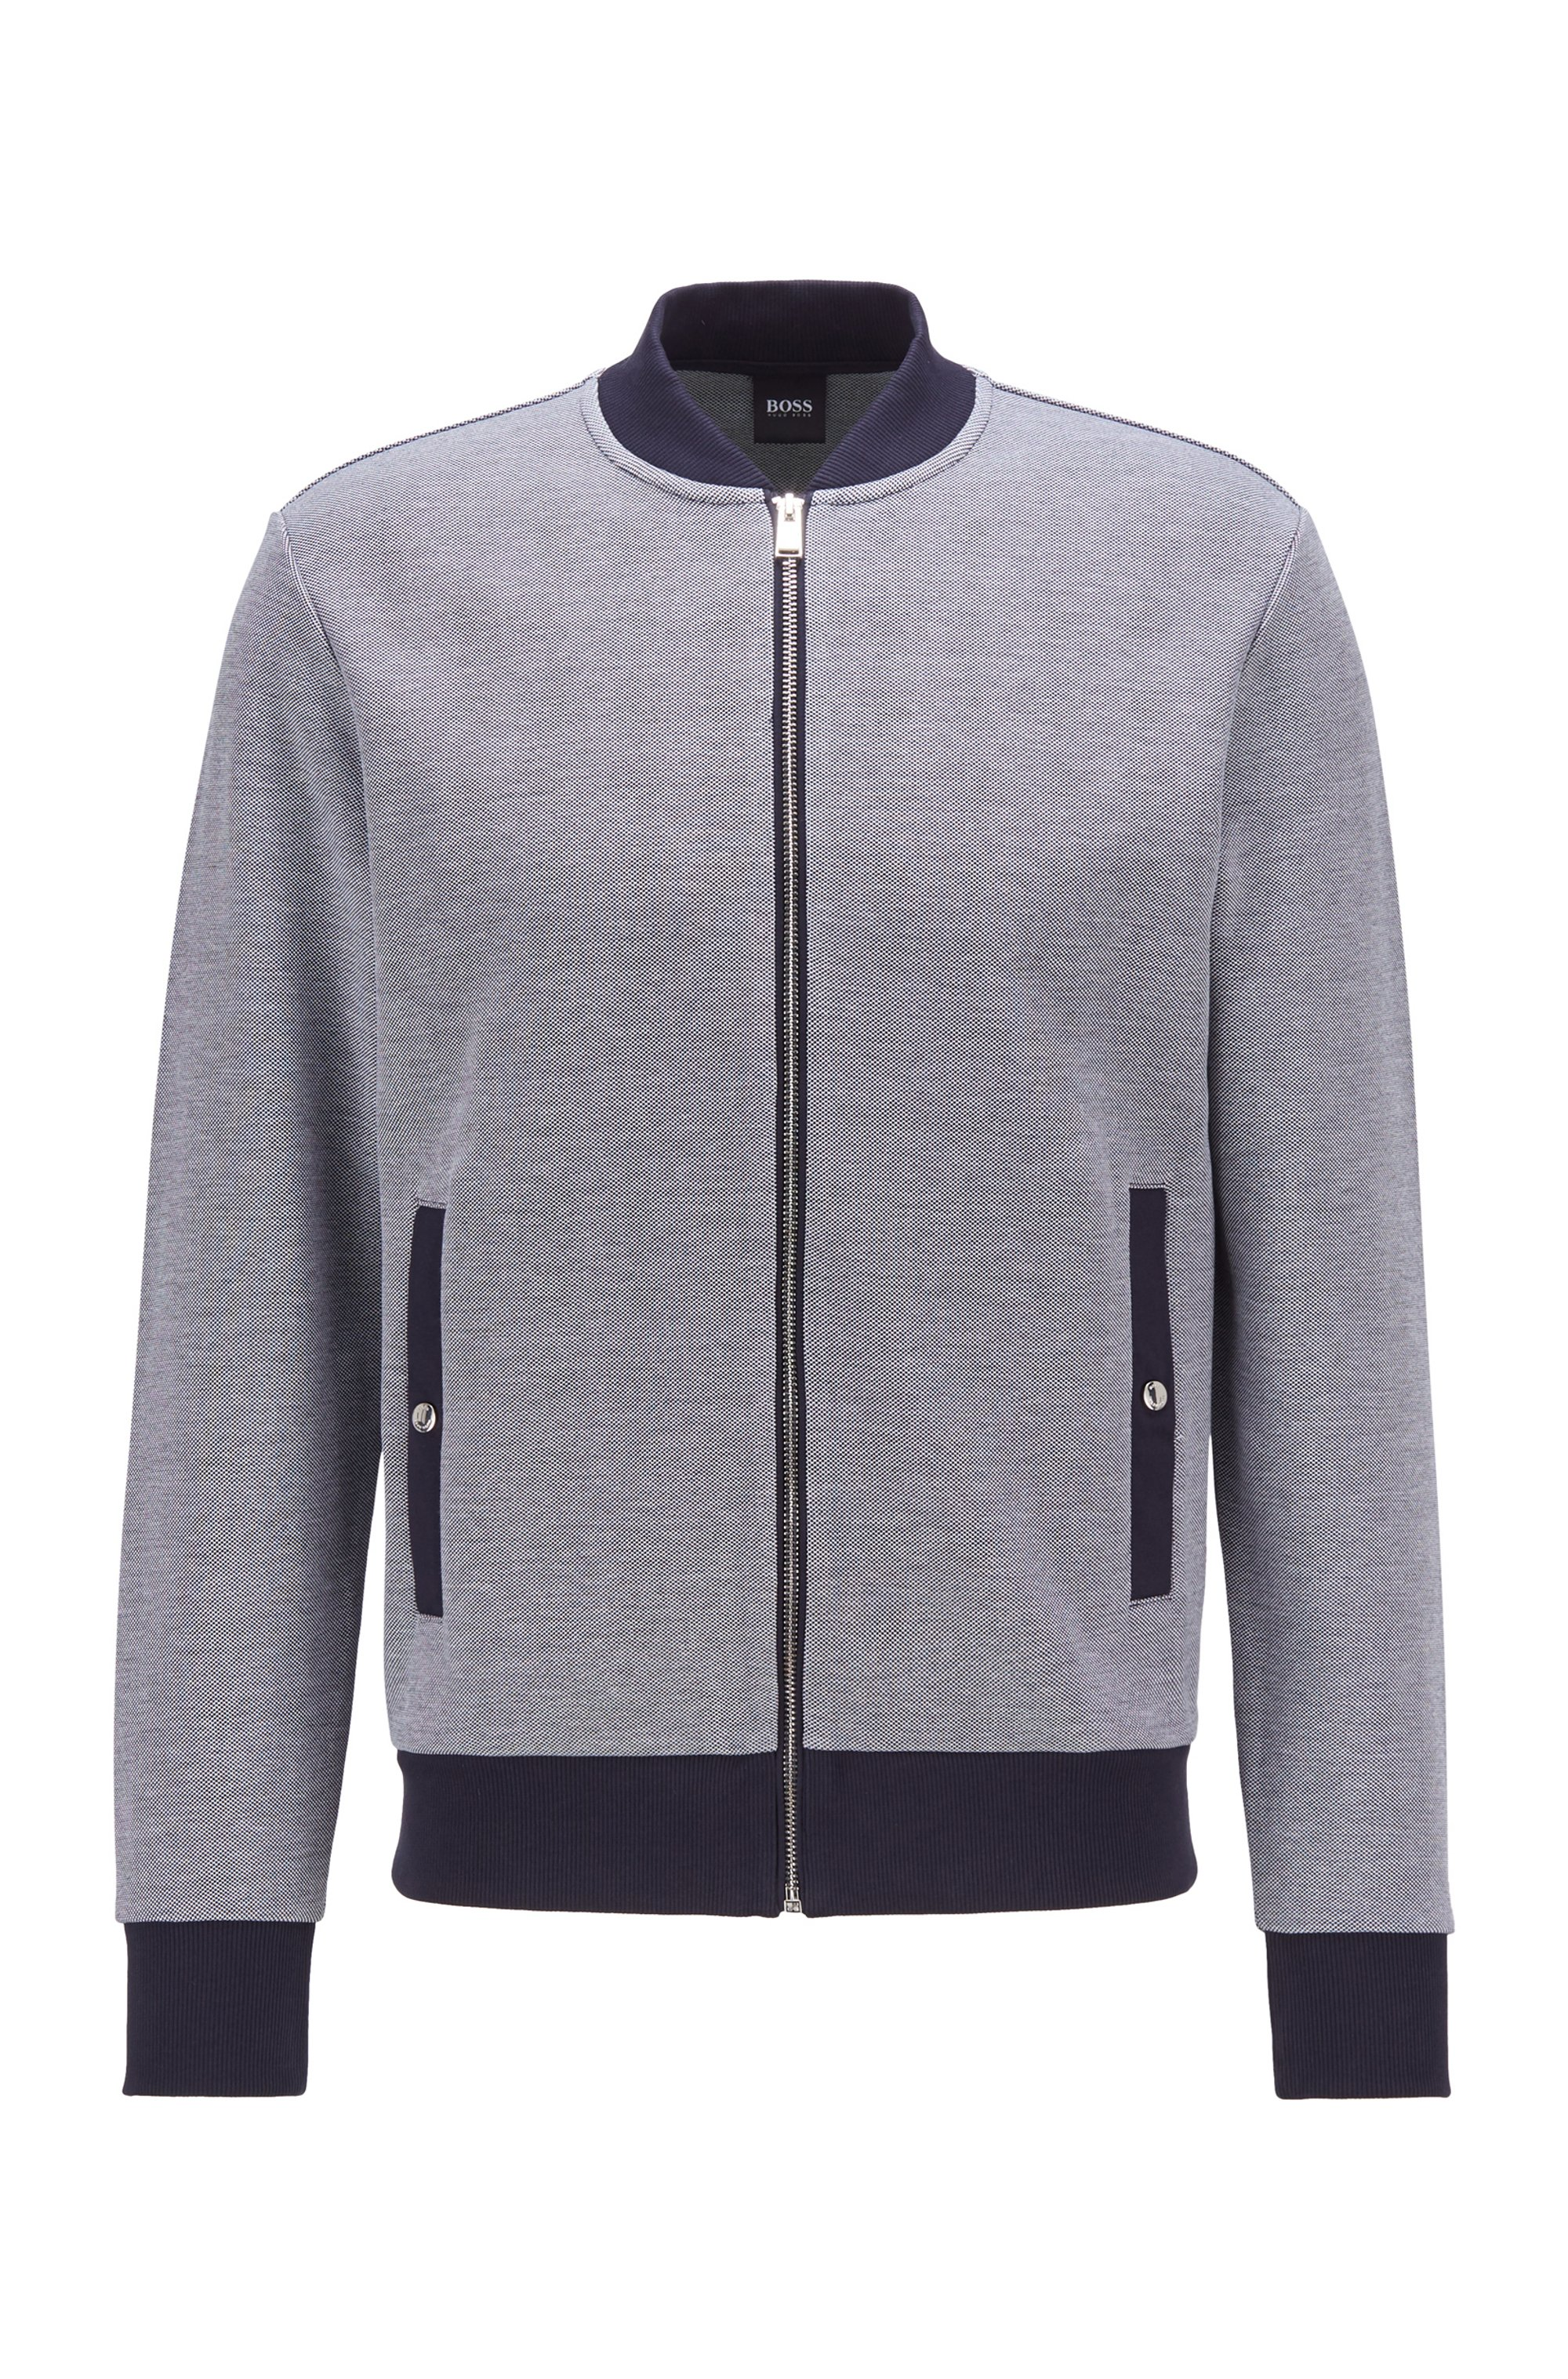 Zip-through sweatshirt in double-knit cotton blend, Grey